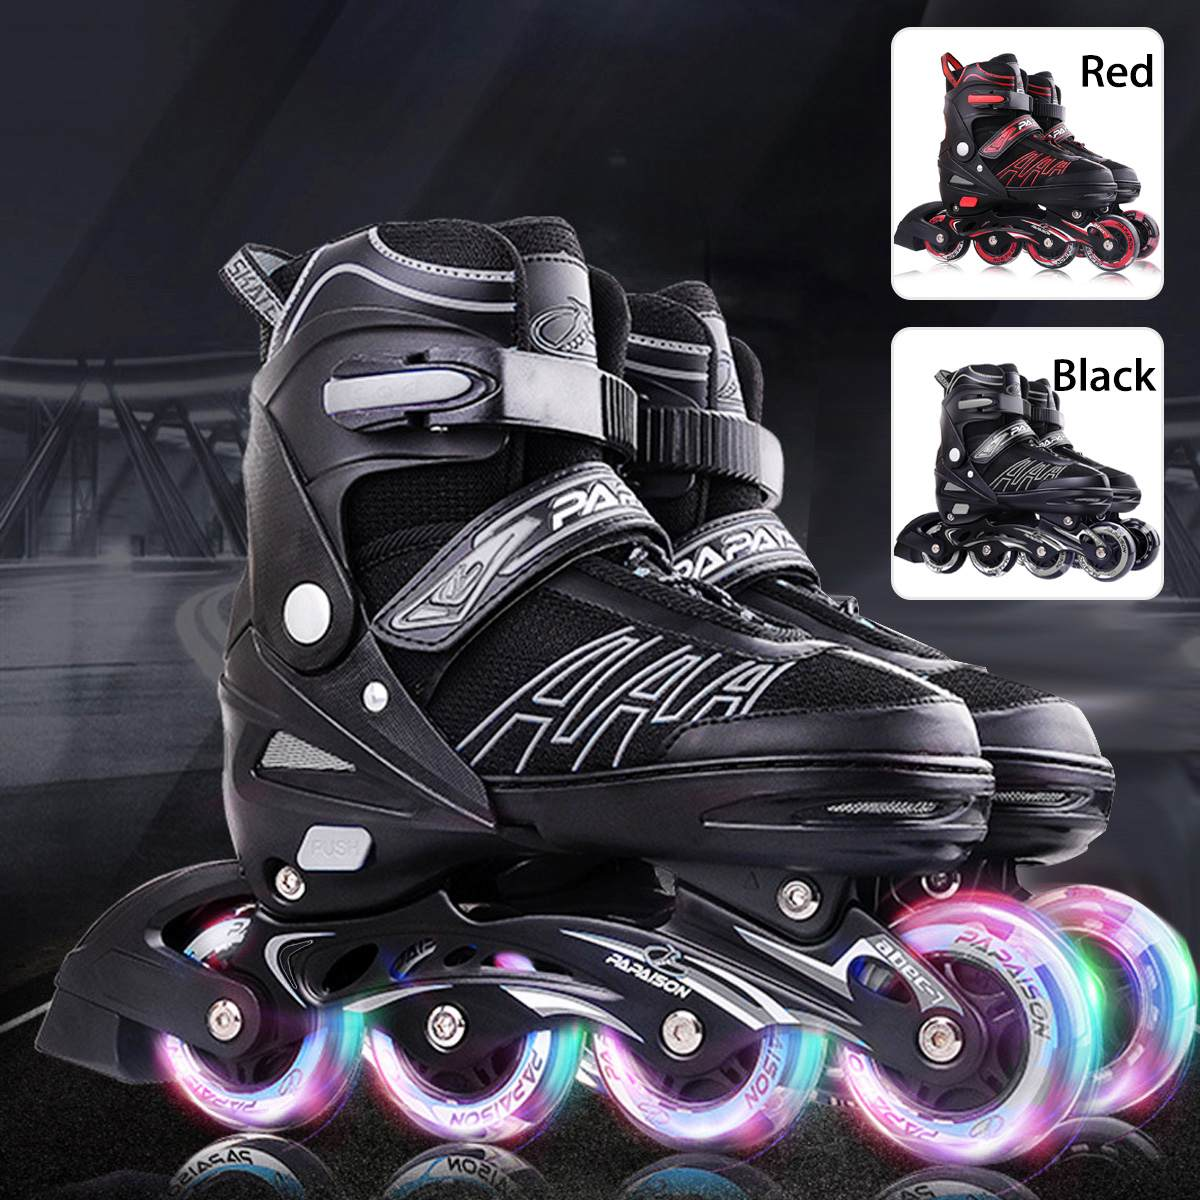 Professional Roller Skates Roller Skates Girls Boys Beginner Kids Four Wheels Single Row Flat Shoes Flash Skates Inline Skates